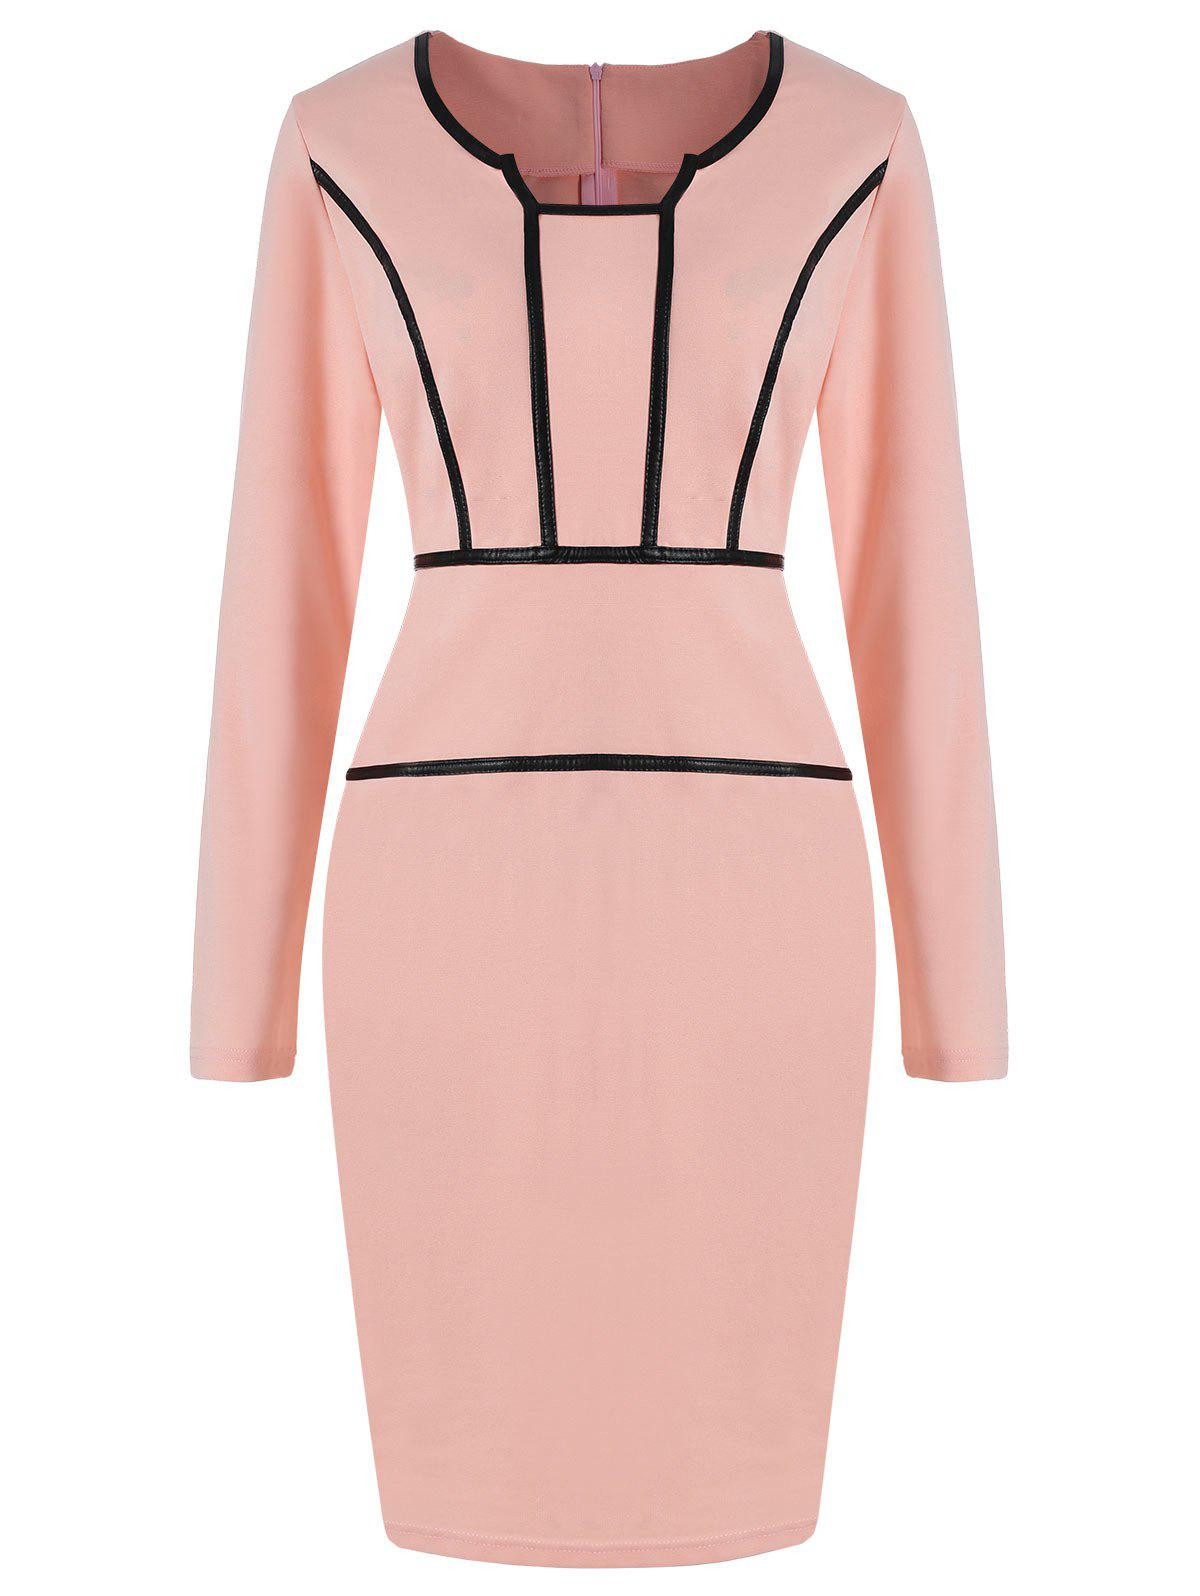 PU Trim Long Sleeve Party Pencil Dress - PINK XL